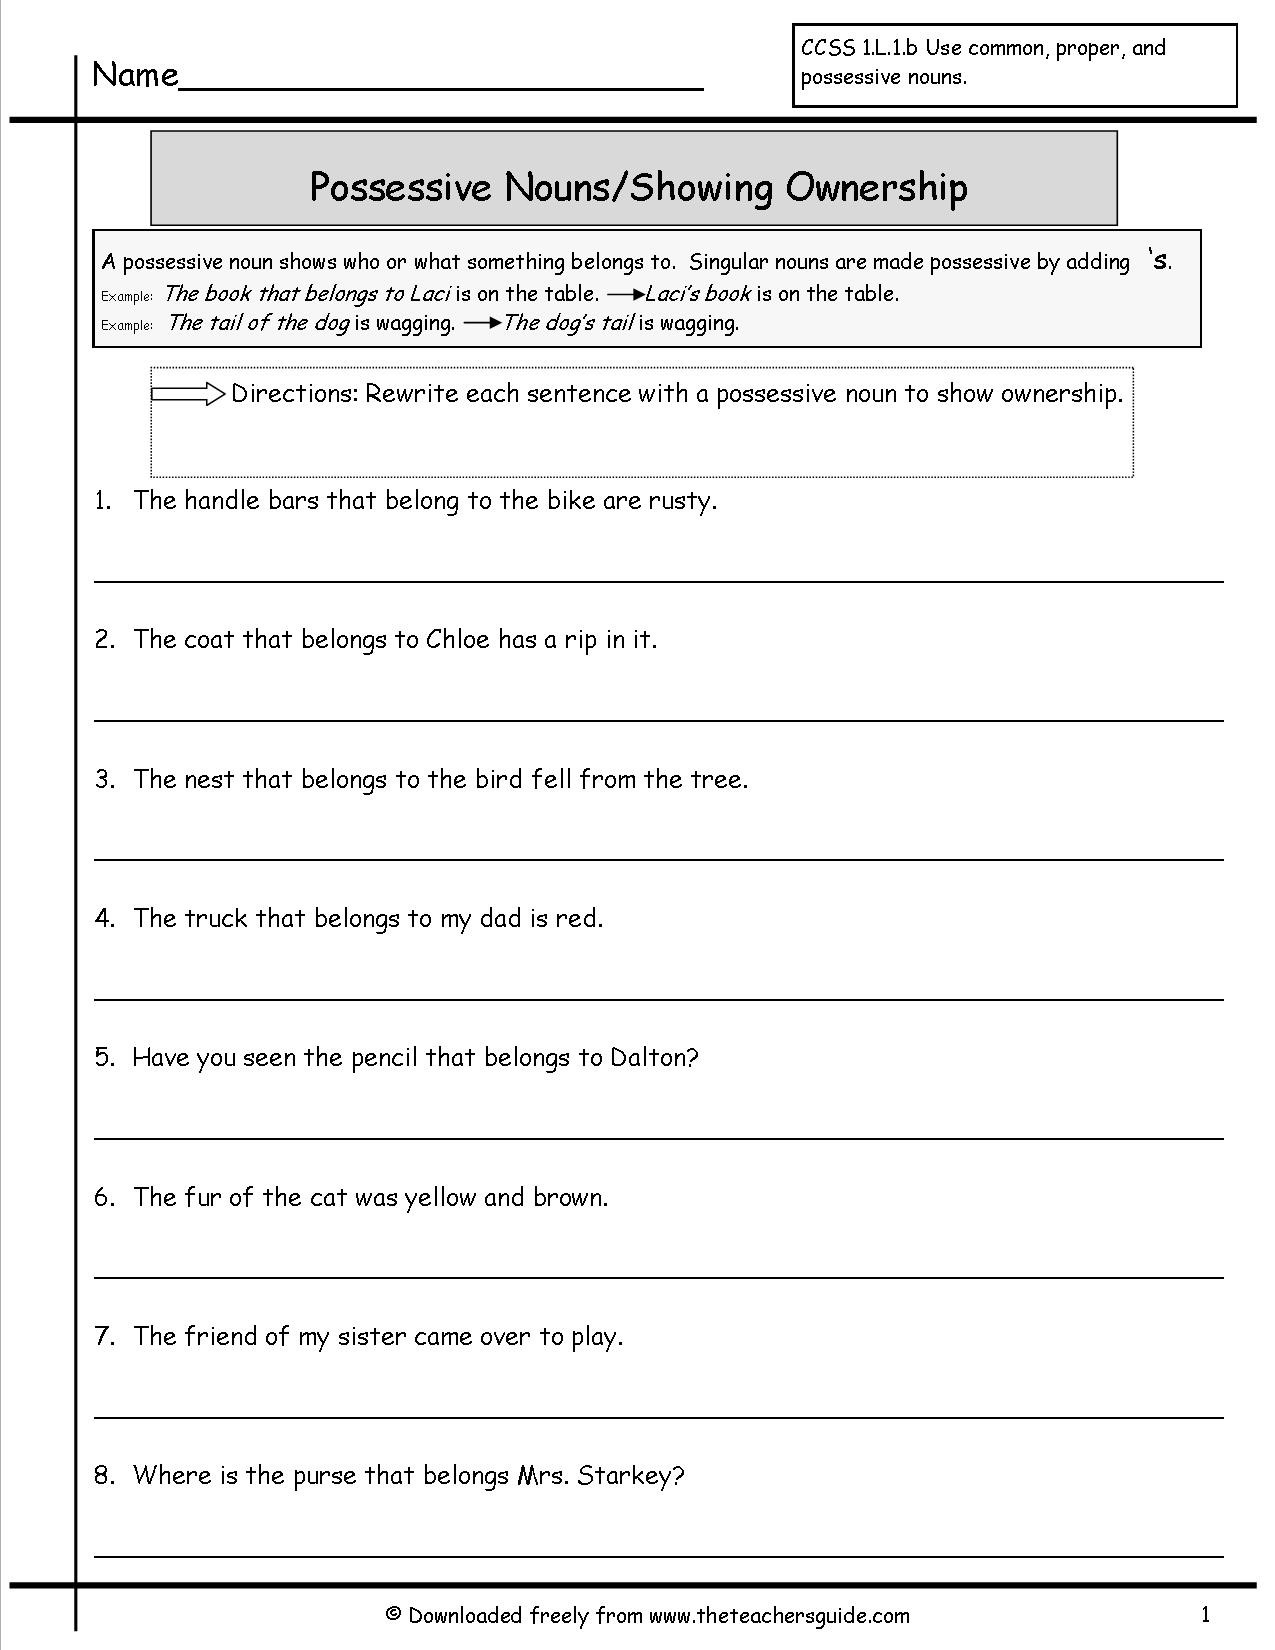 Possessive Nouns Worksheets 3rd Grade Possessive Pronouns Worksheets 4th Grade